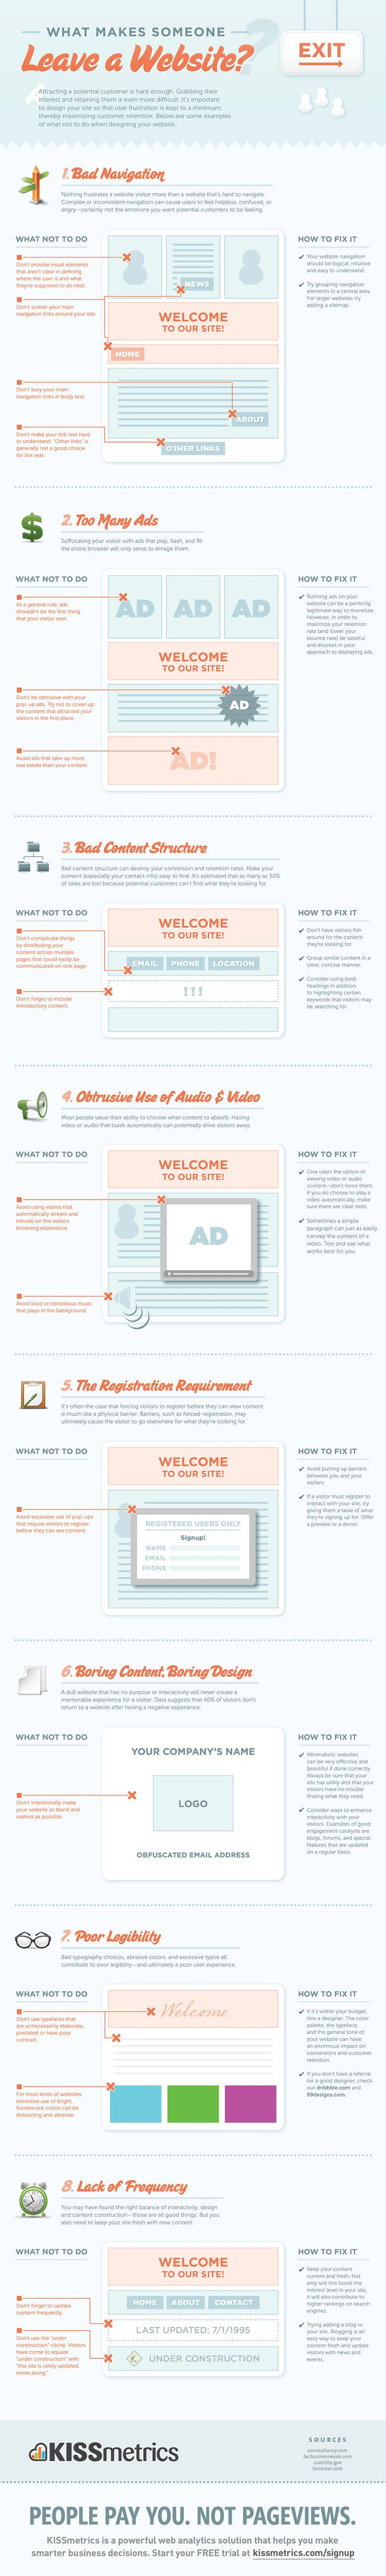 What Makes Someone Leave a Website?Webdesign,  Internet Site, People Leaves,  Website, Web Design, Web Site, Social Media, Website Design, Infographic